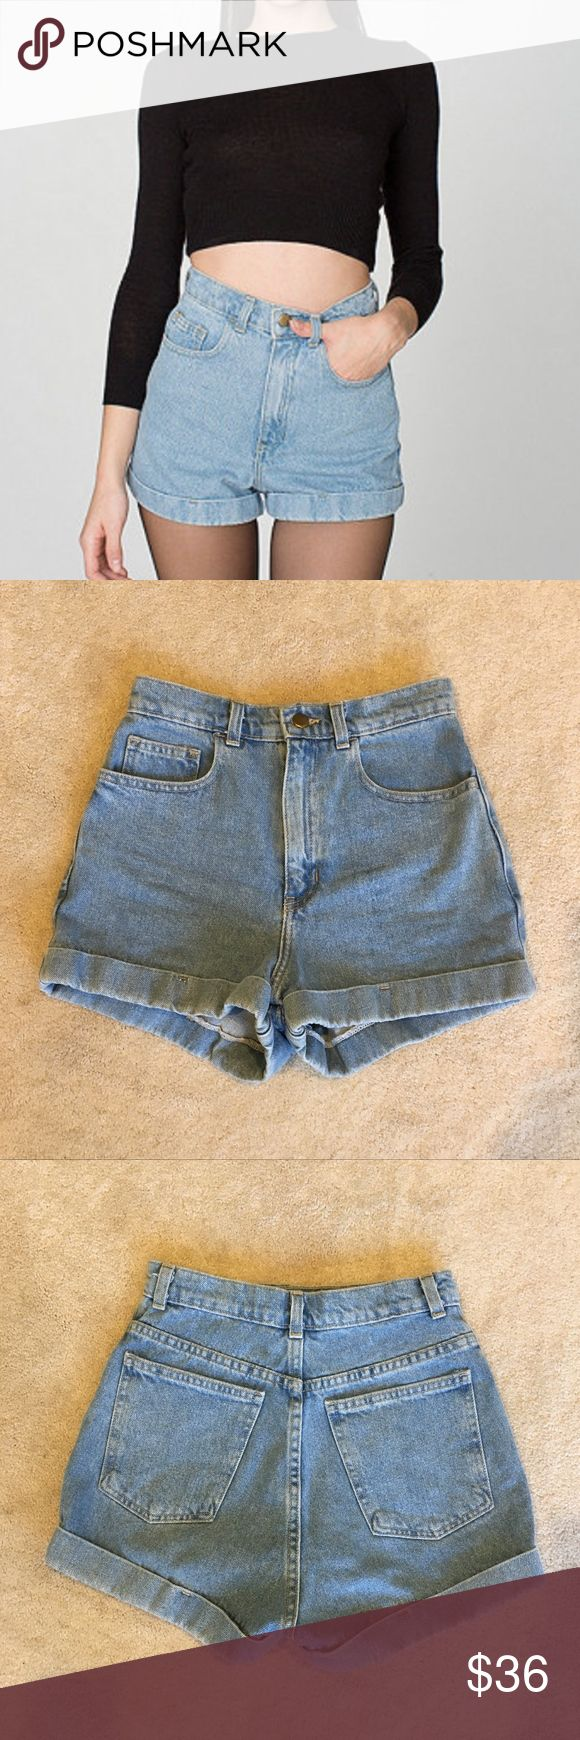 NEW American Apparel High Wasted Jean Shorts These BRAND NEW high wasted jeans have never been used and are in perfect condition. Please contact with any questions you might have or if you would like additional photos! American Apparel Shorts Jean Shorts